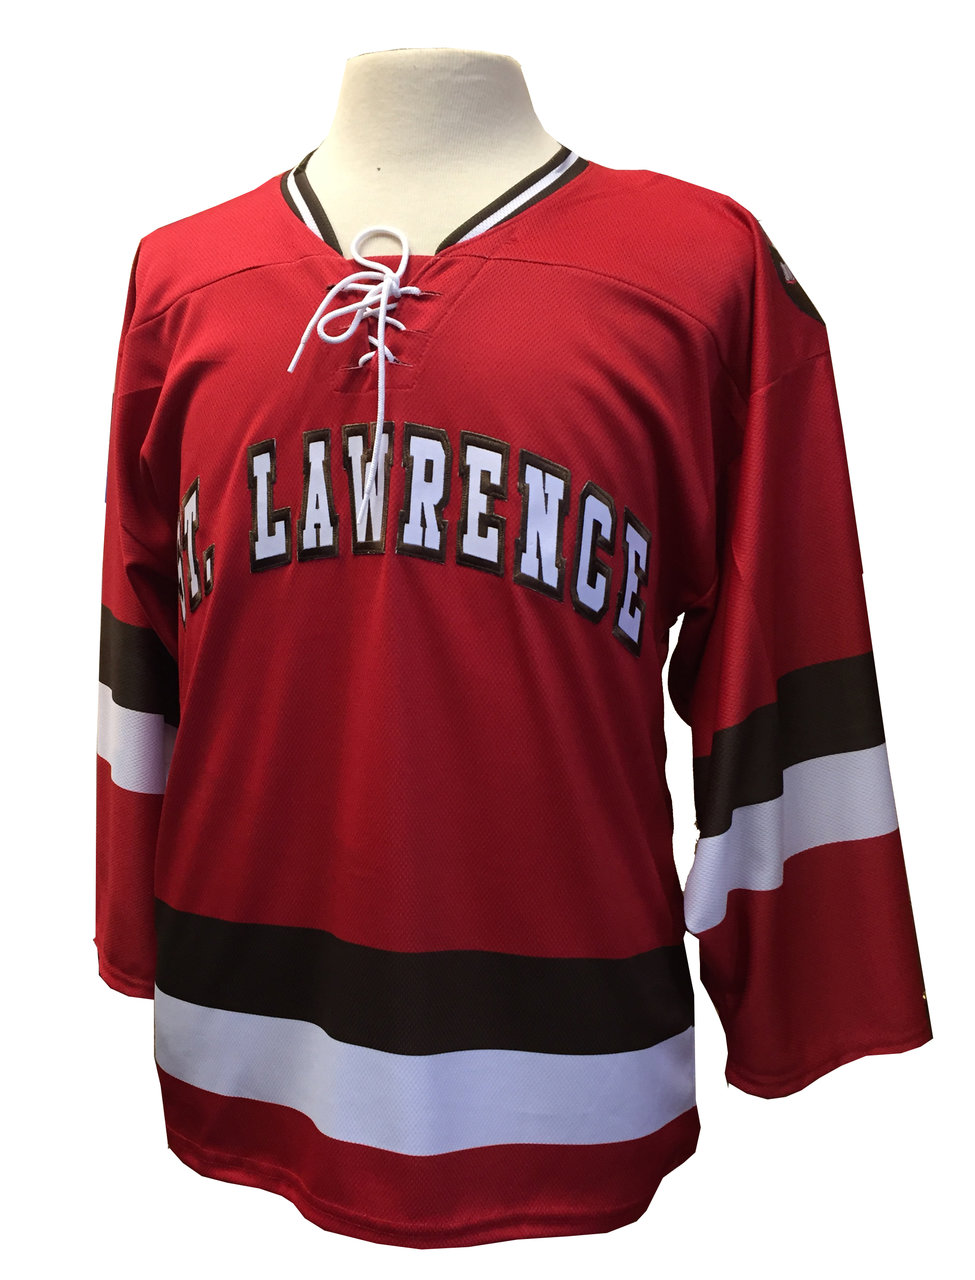 HOCKEY JERSEY - CHAMPION - ADULT RED  930b07e9271